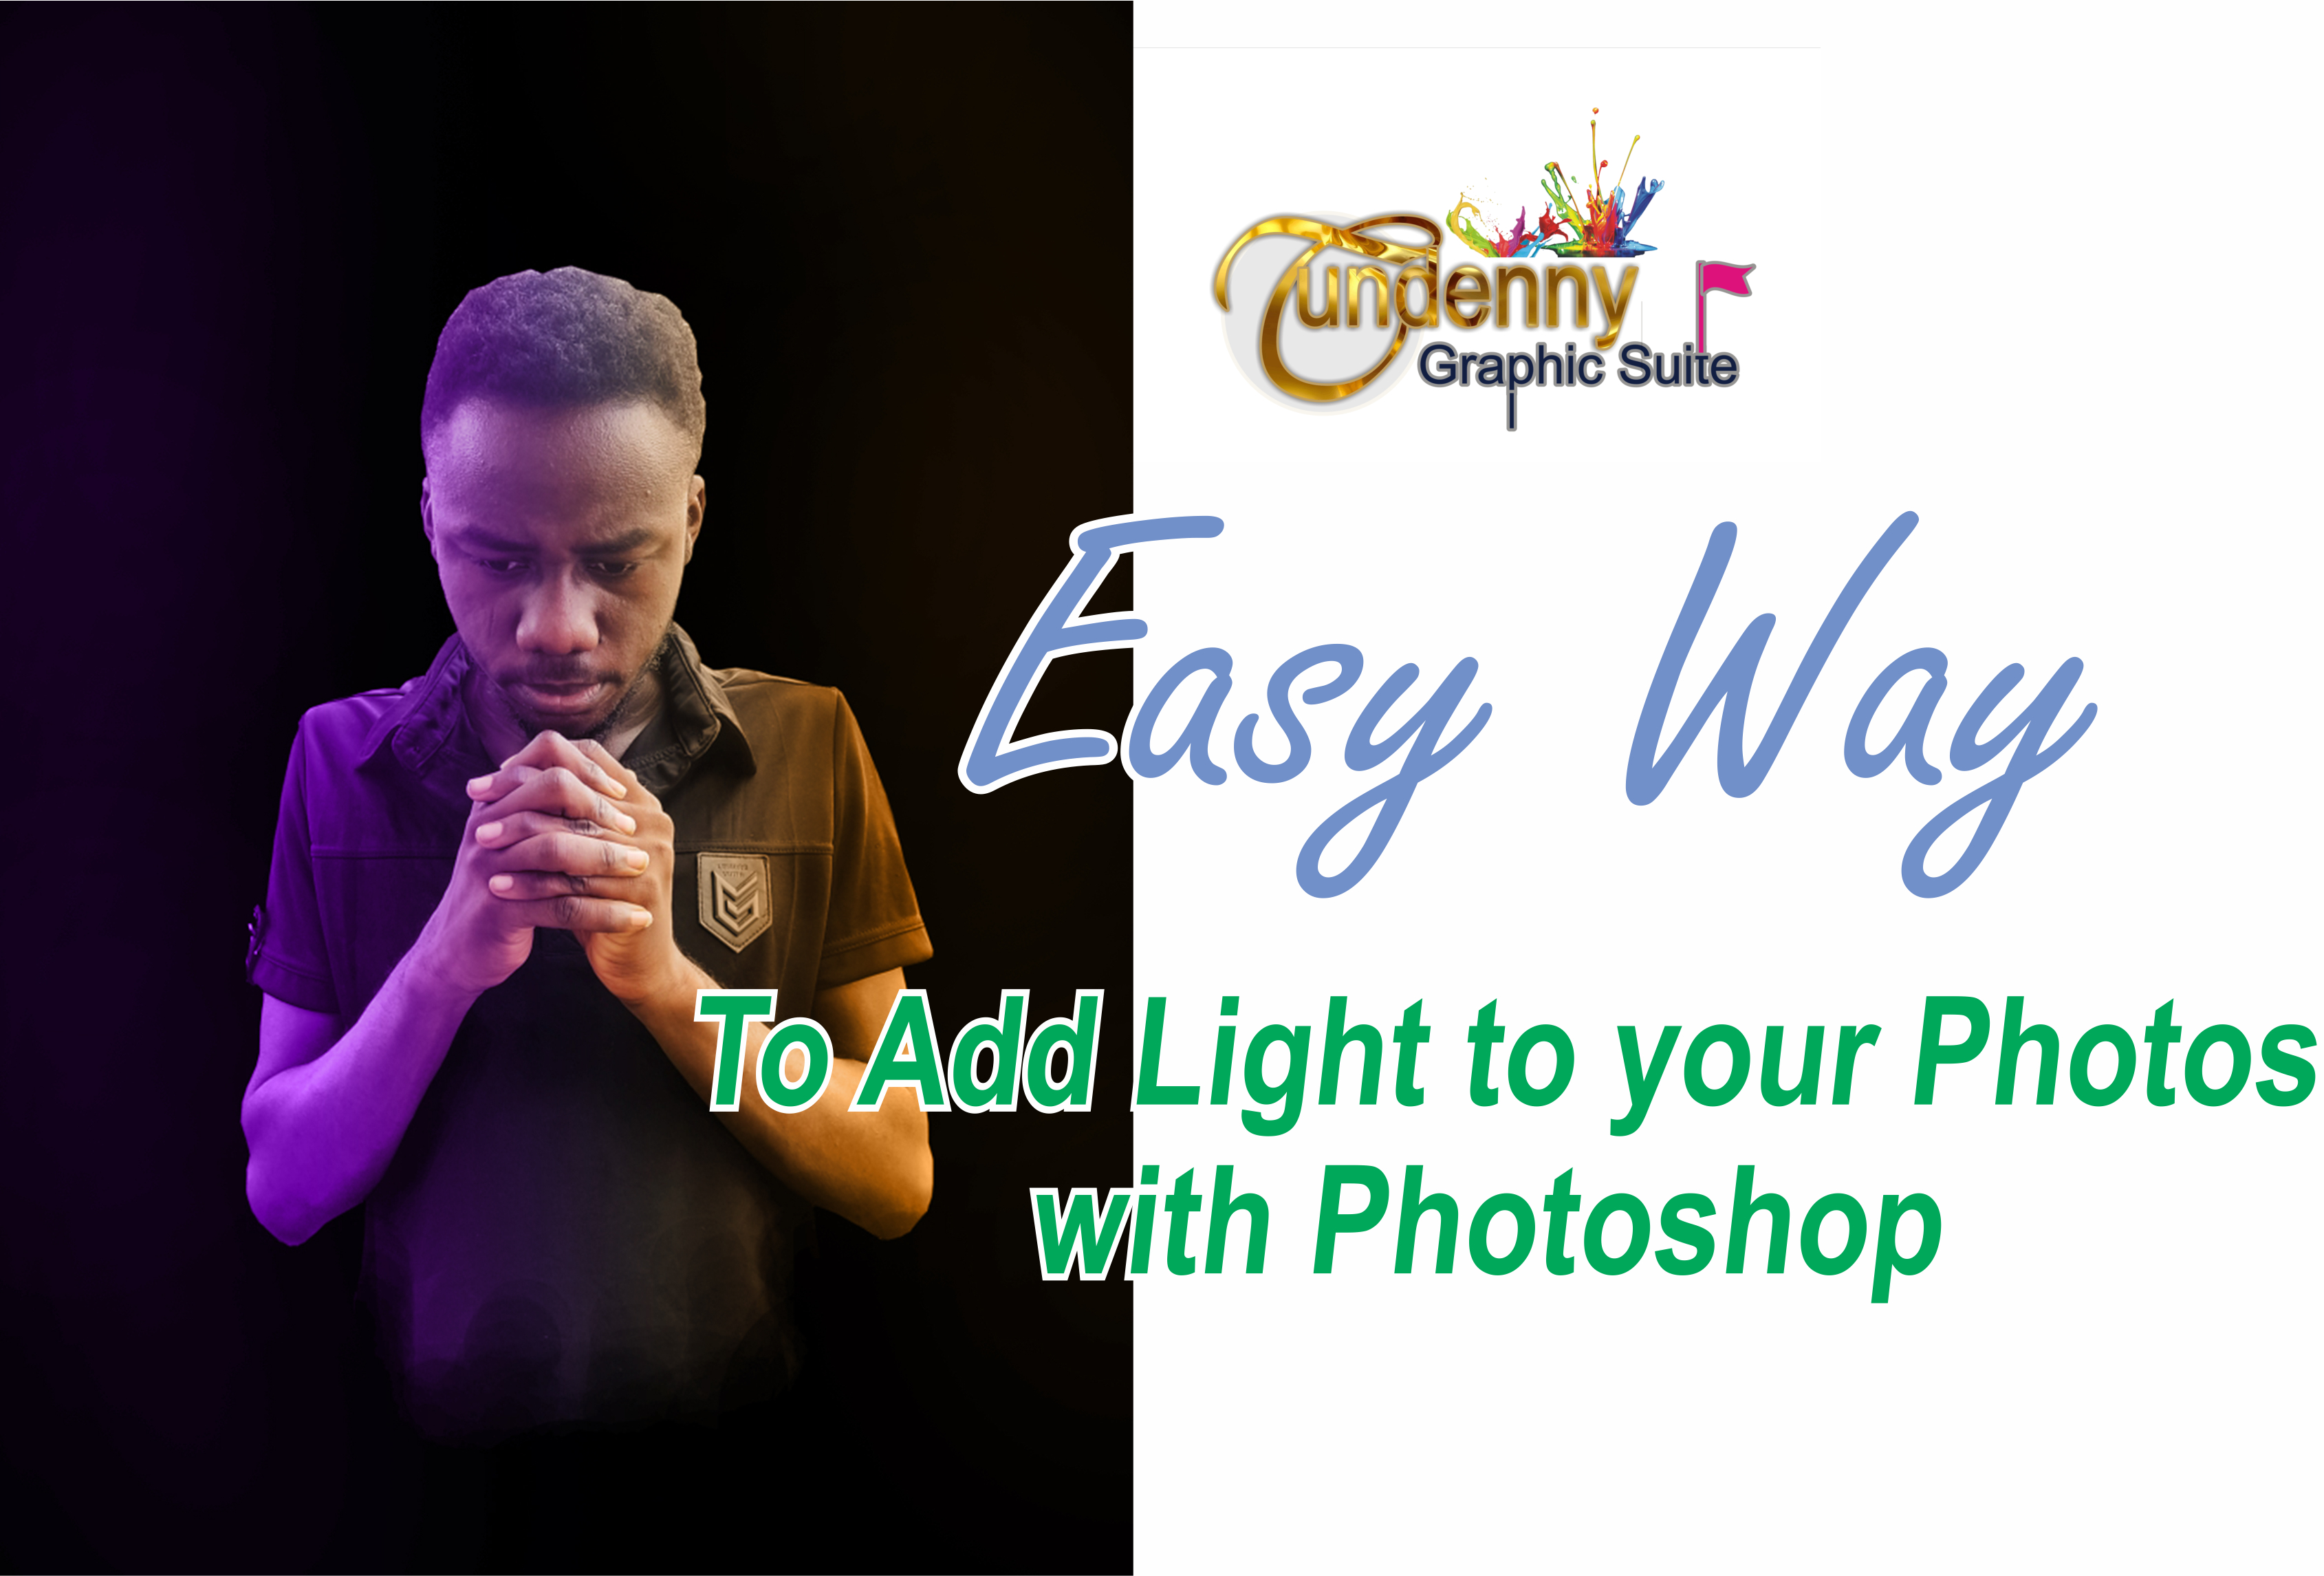 Tundenny_Easy Way to add Light to photos with photoshop